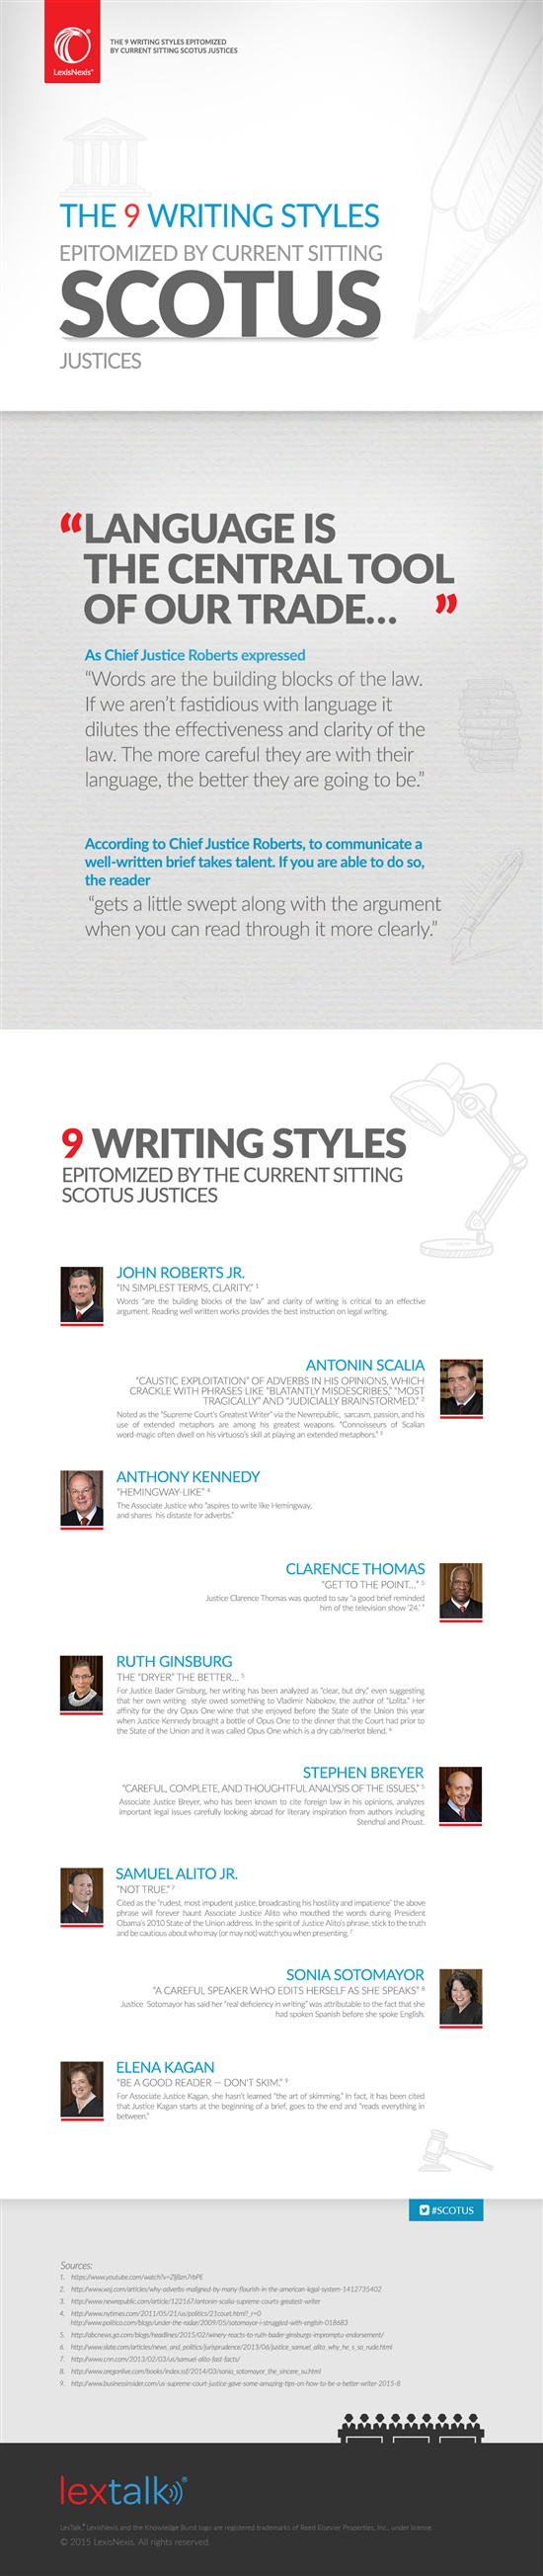 9 Writing Tips from Supreme Court Justices